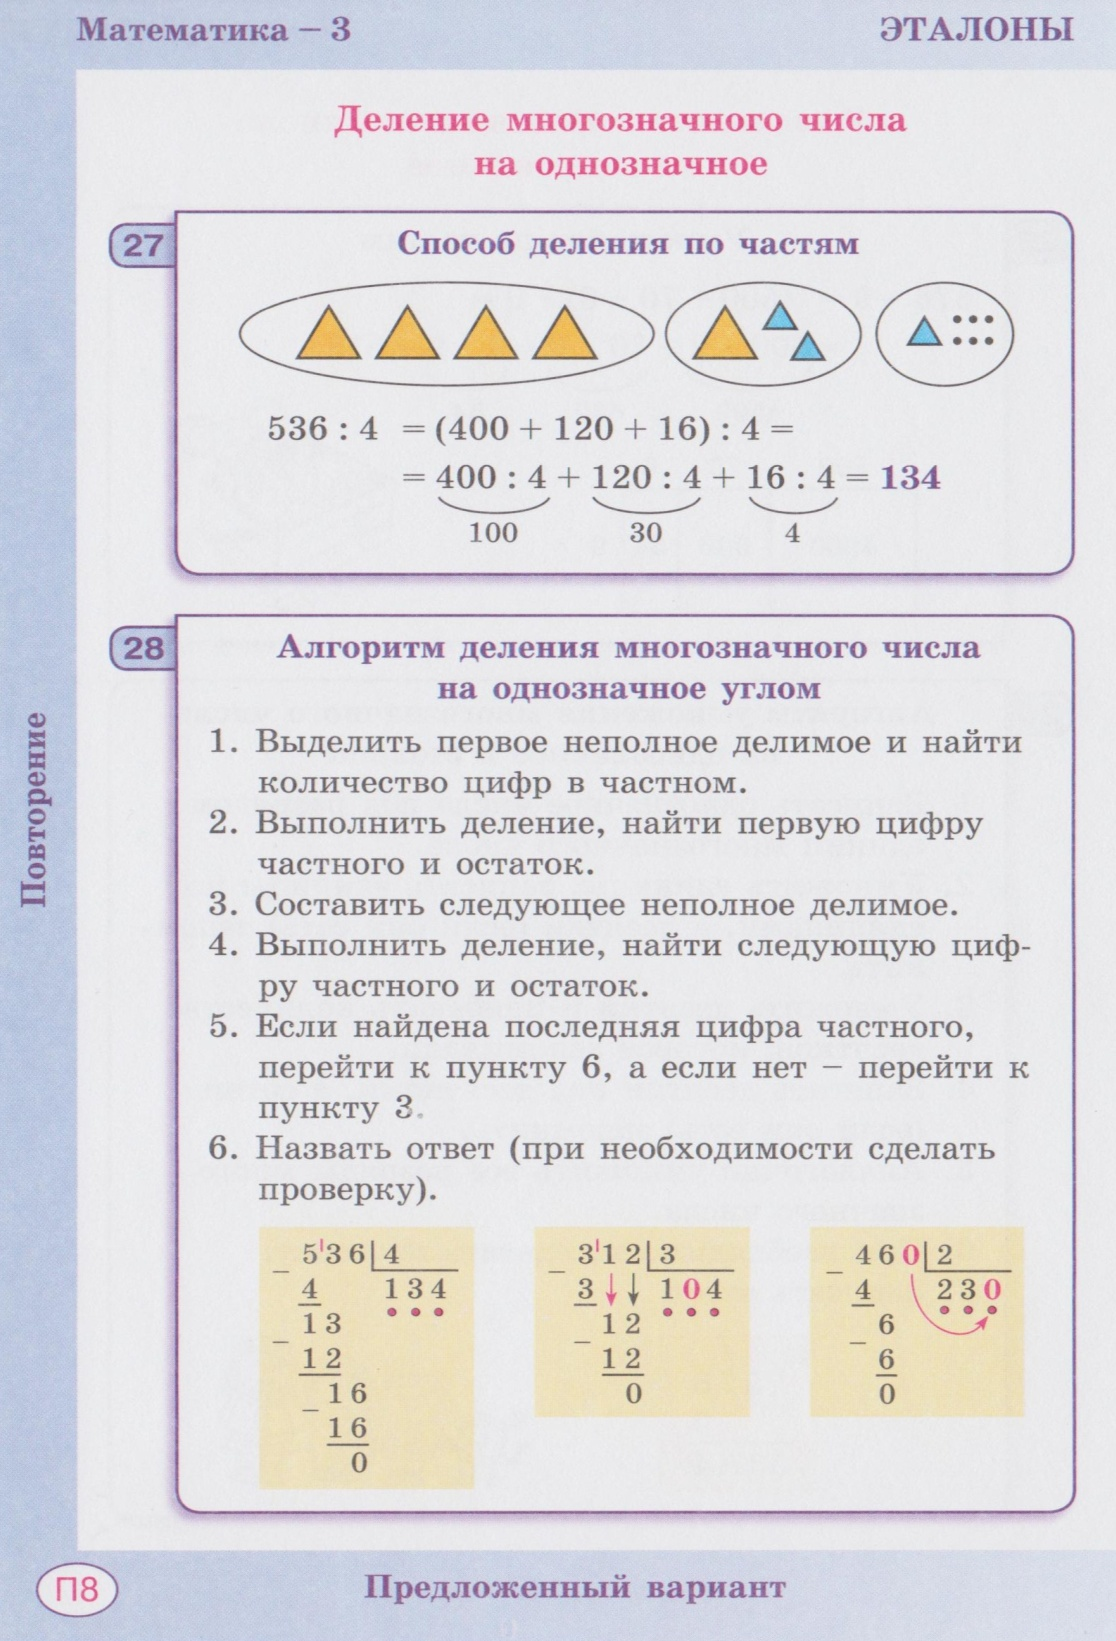 C:\Users\Настя\Pictures\2012-09-08 8\8 001.jpg